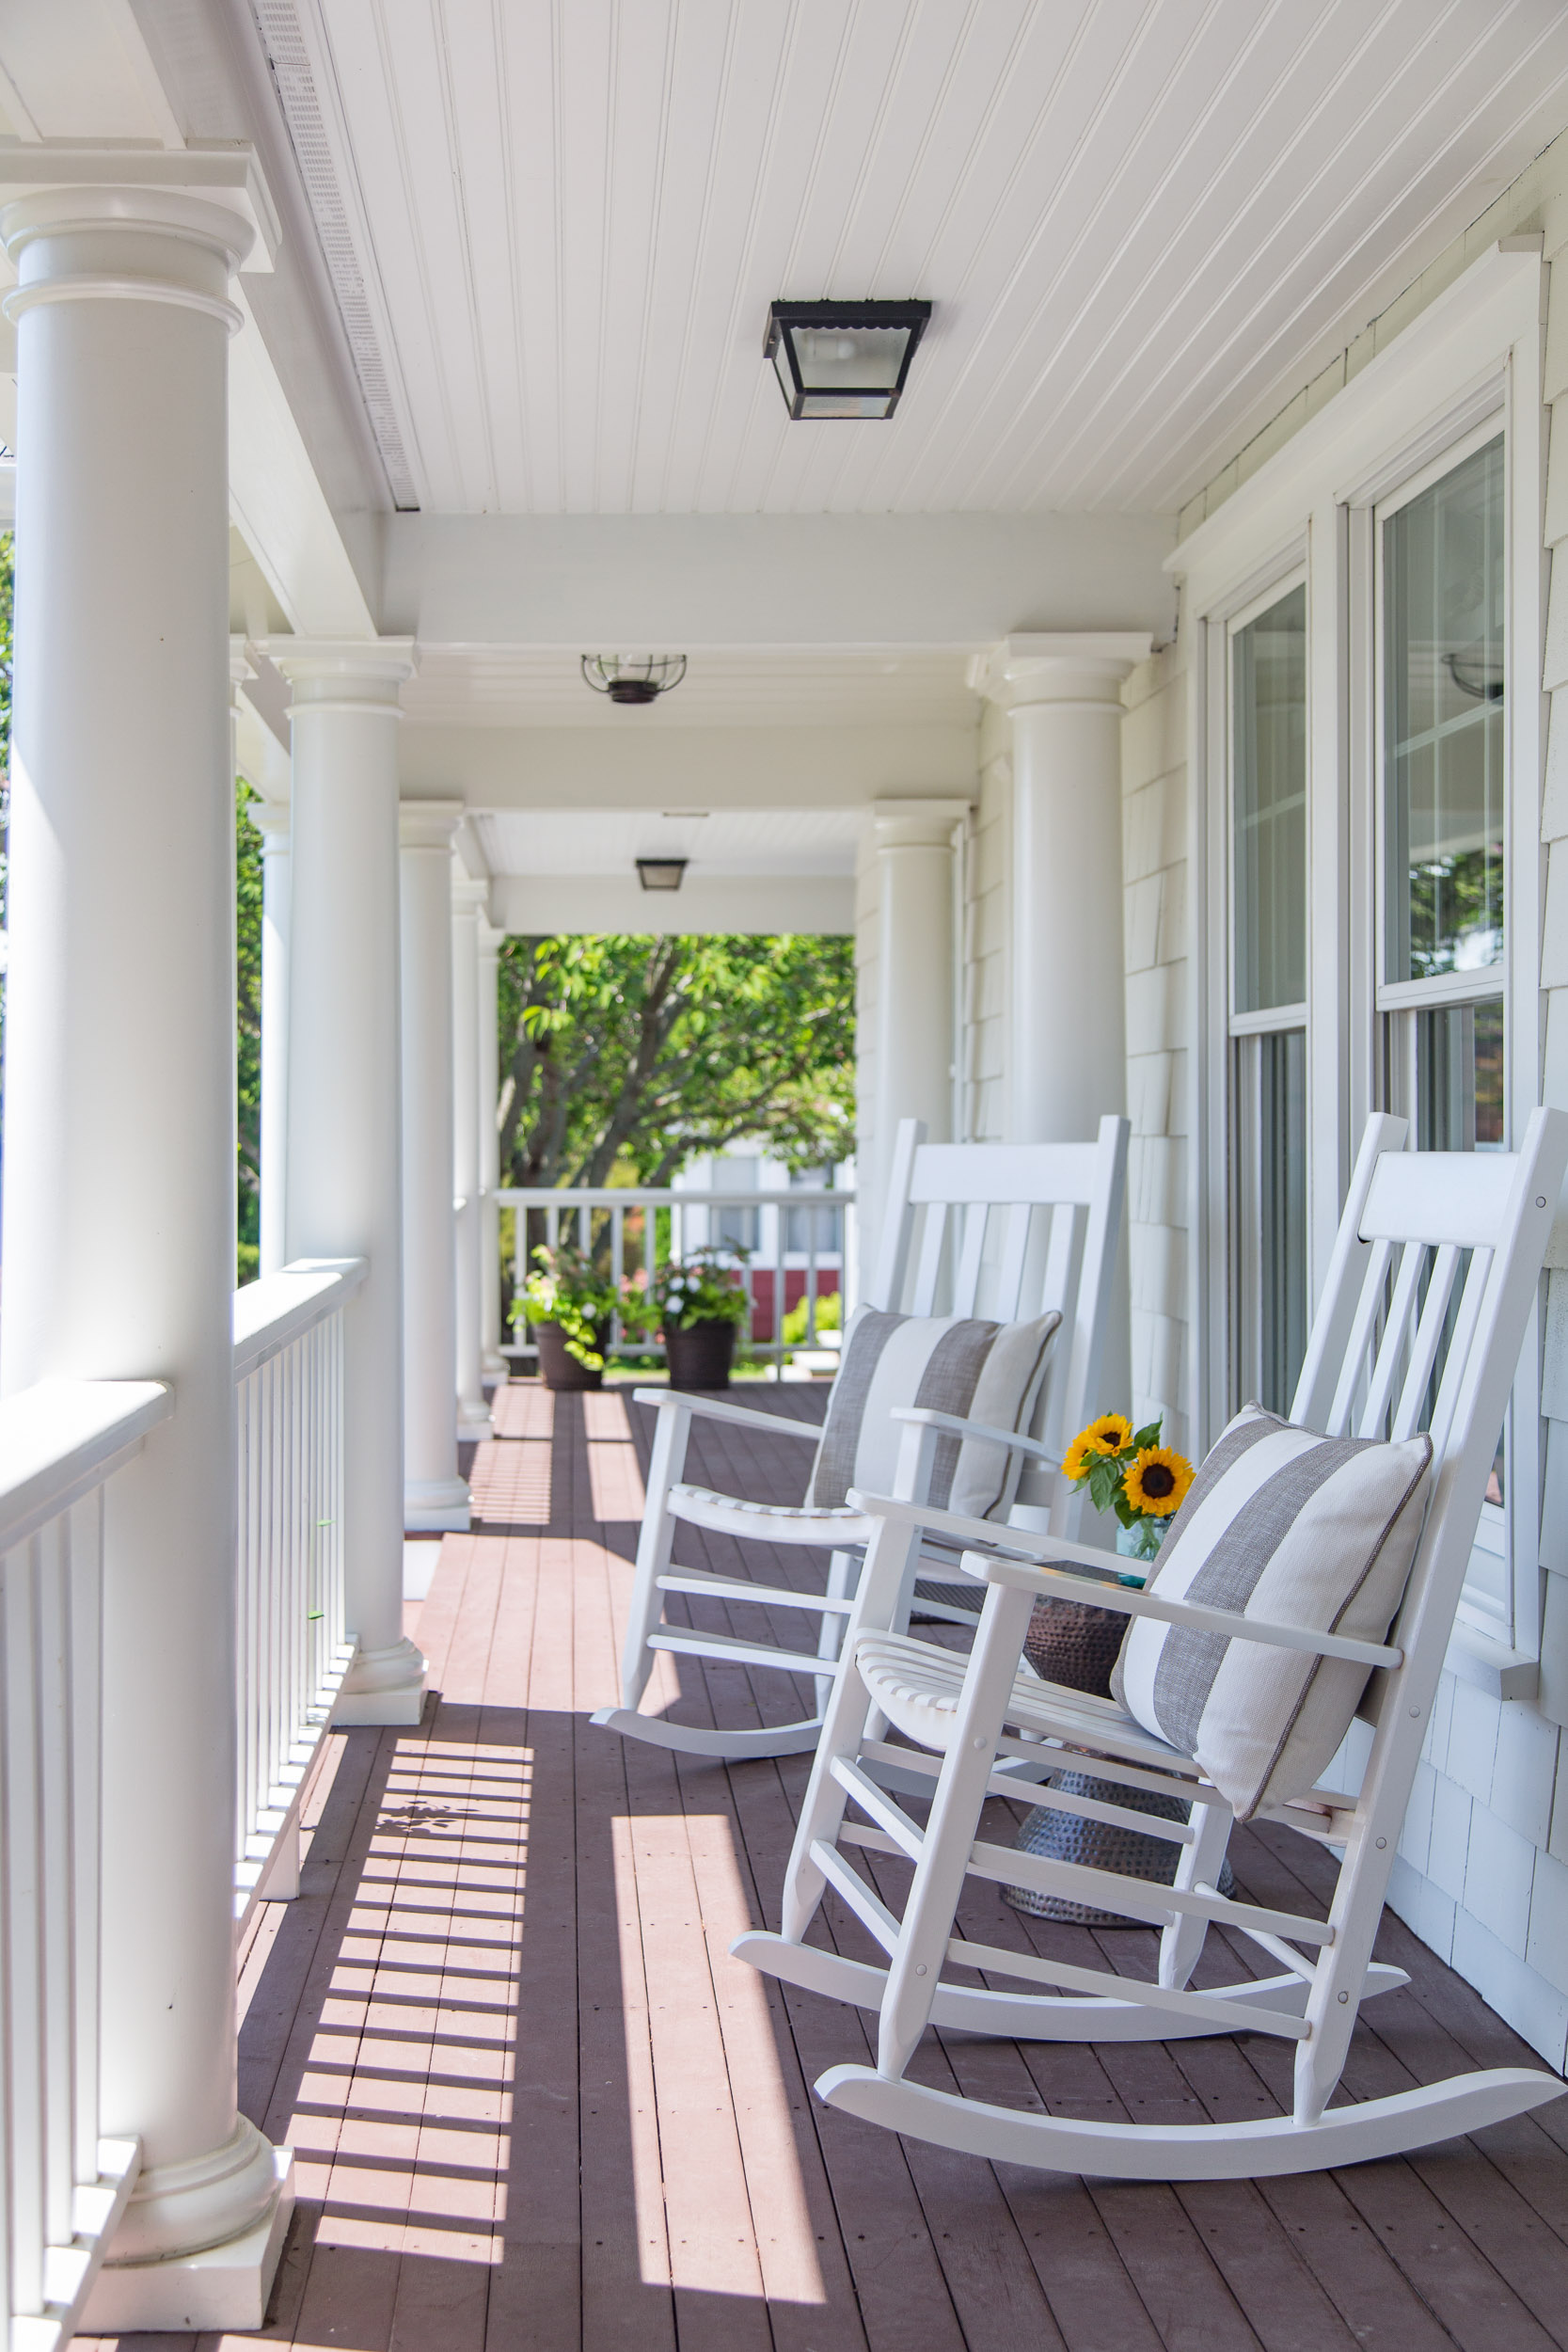 Front porch rocking chairs sunflower striped pillows.jpg